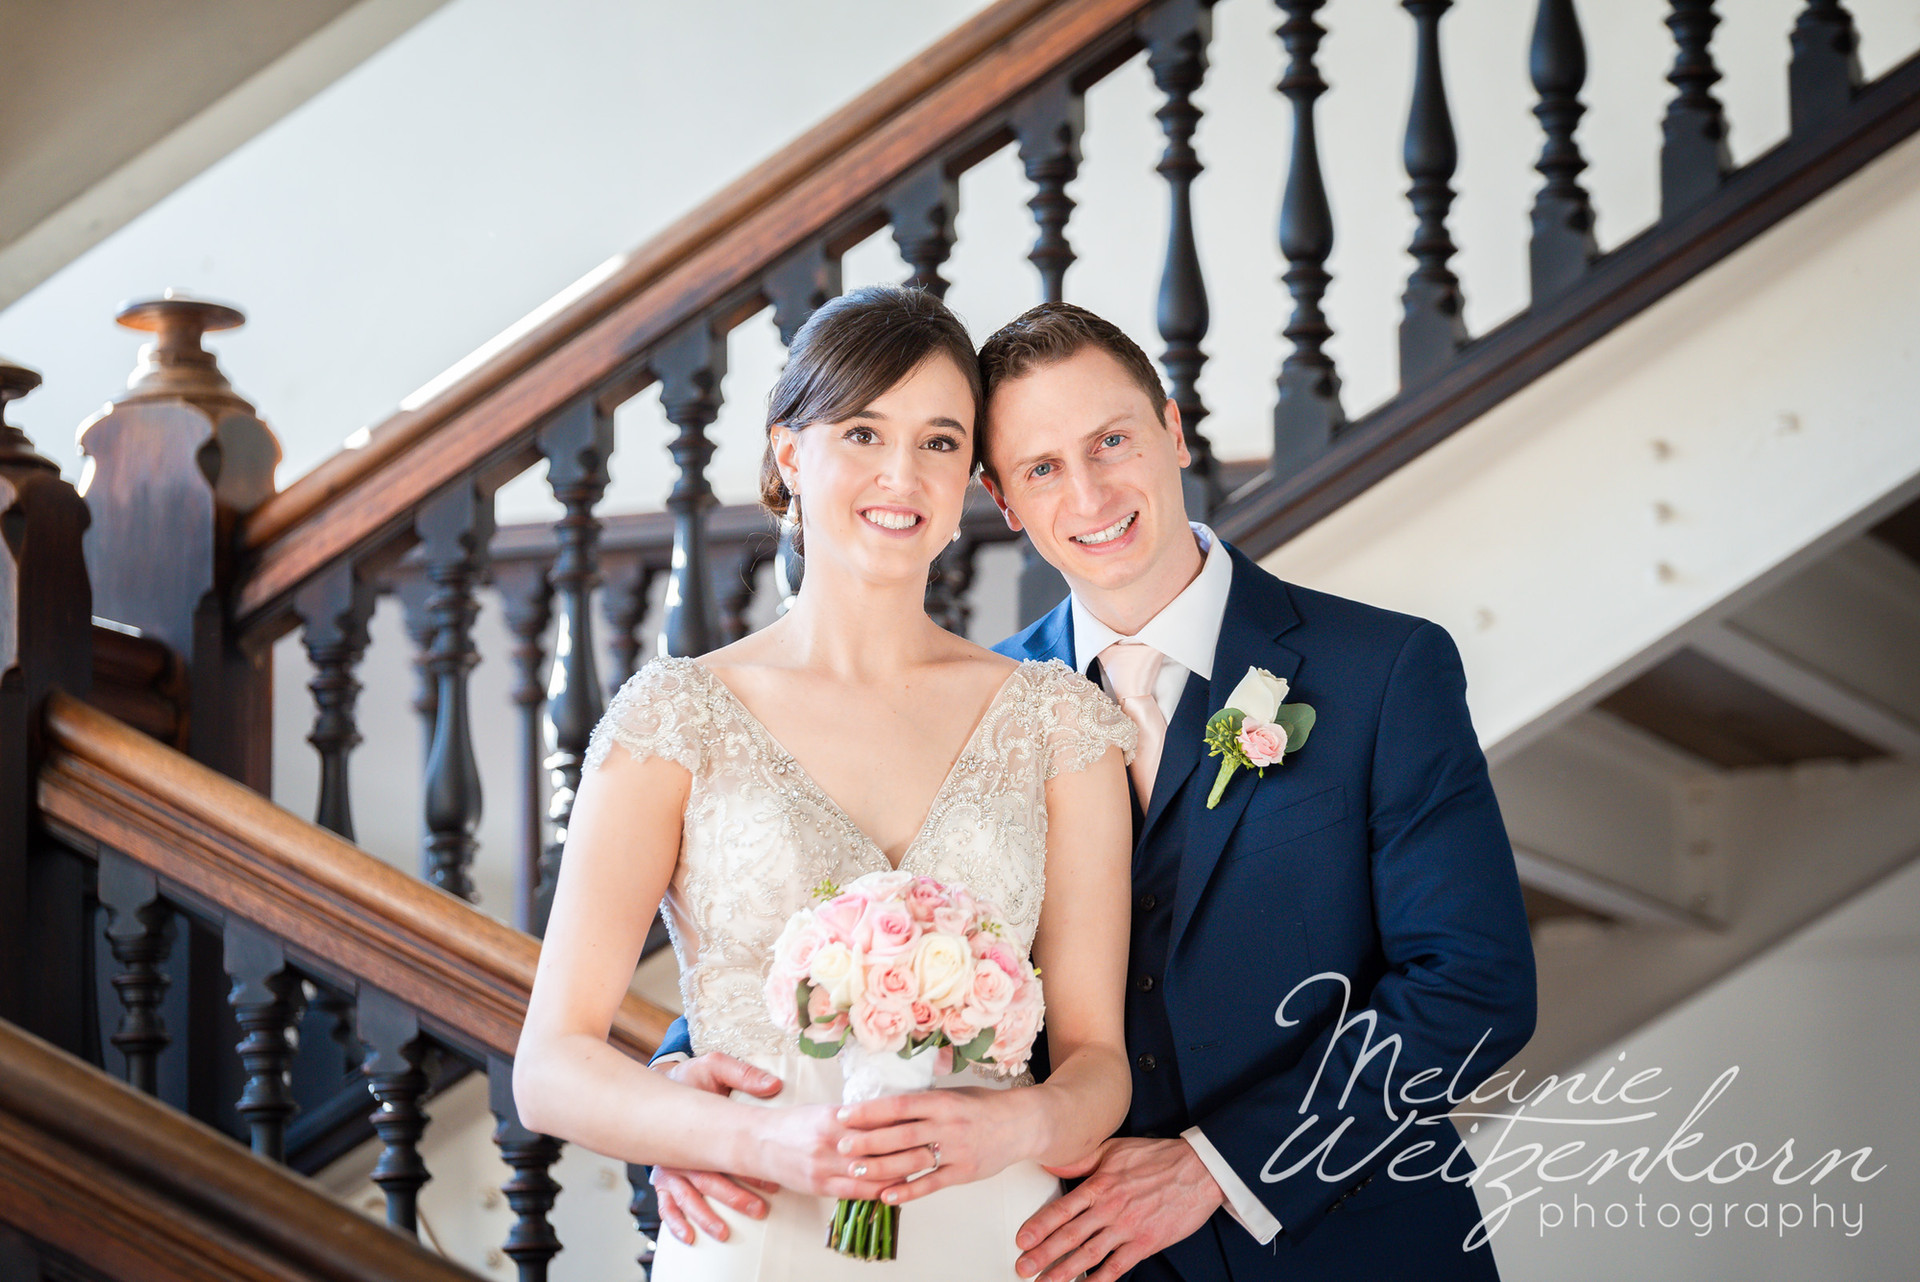 MWPBaldwinSchoolWeddingPhotos-6.jpg